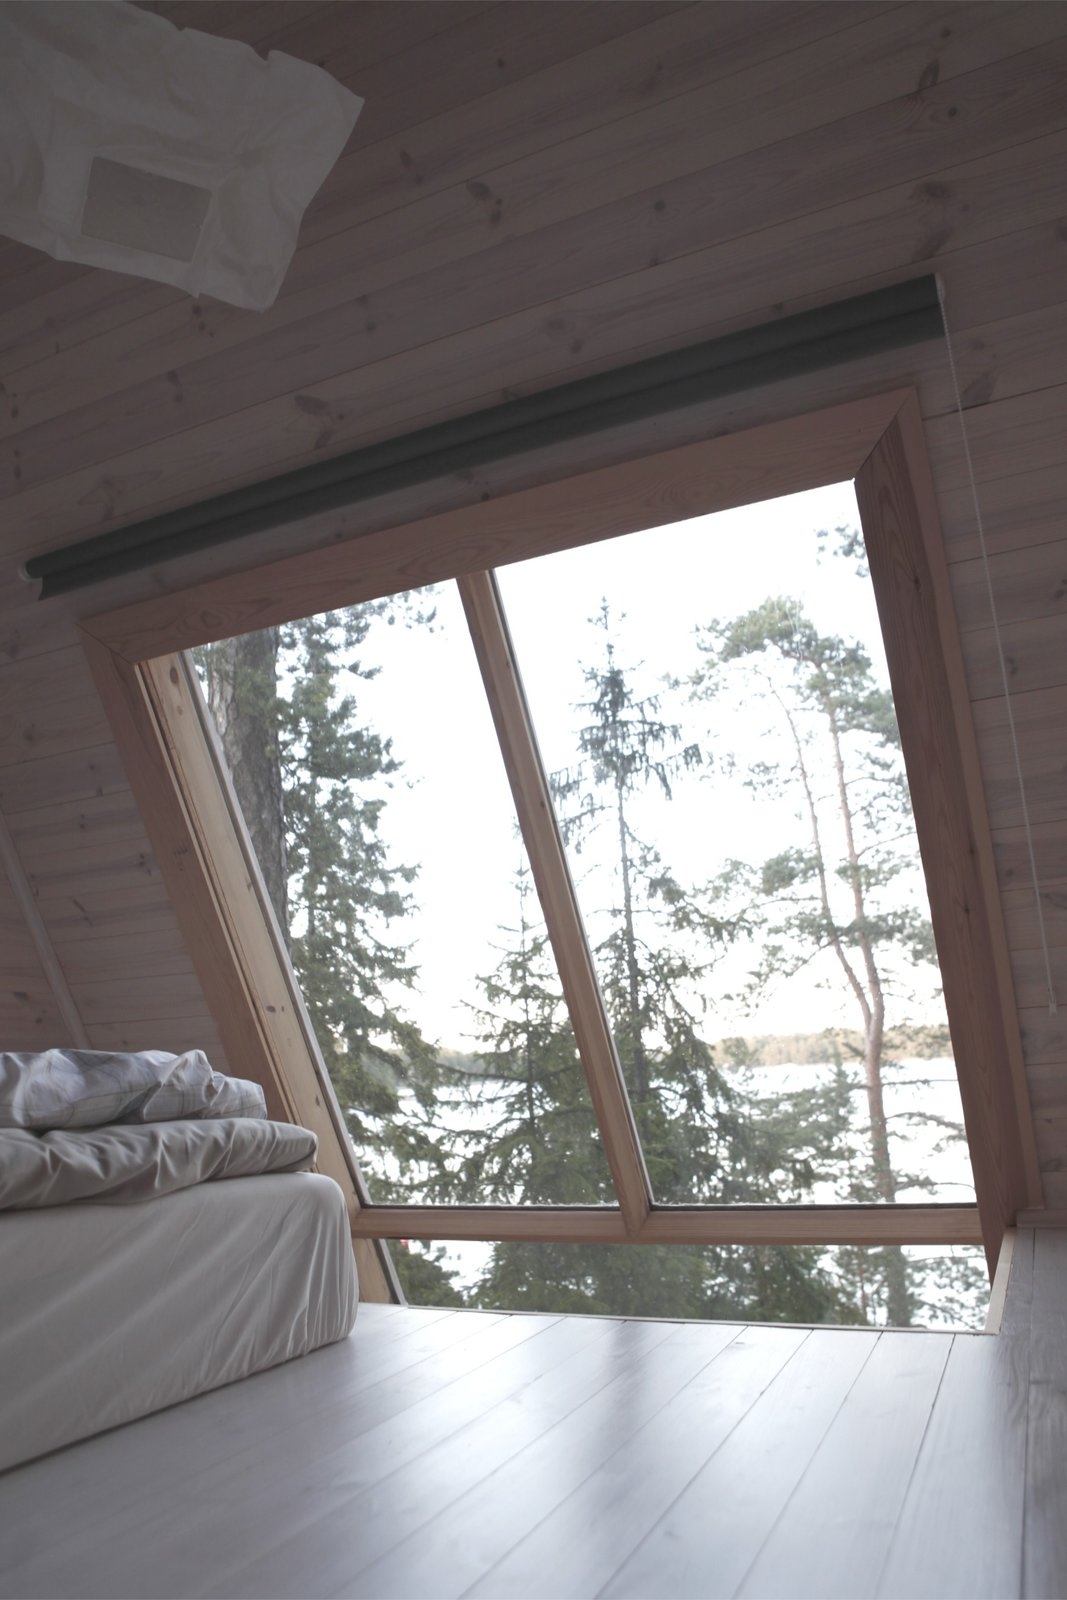 Nido Tiny Cabin by Robert Falck indoor view from top floor loft bedroom with light wood flooring and walls with large three panel window framed with wood